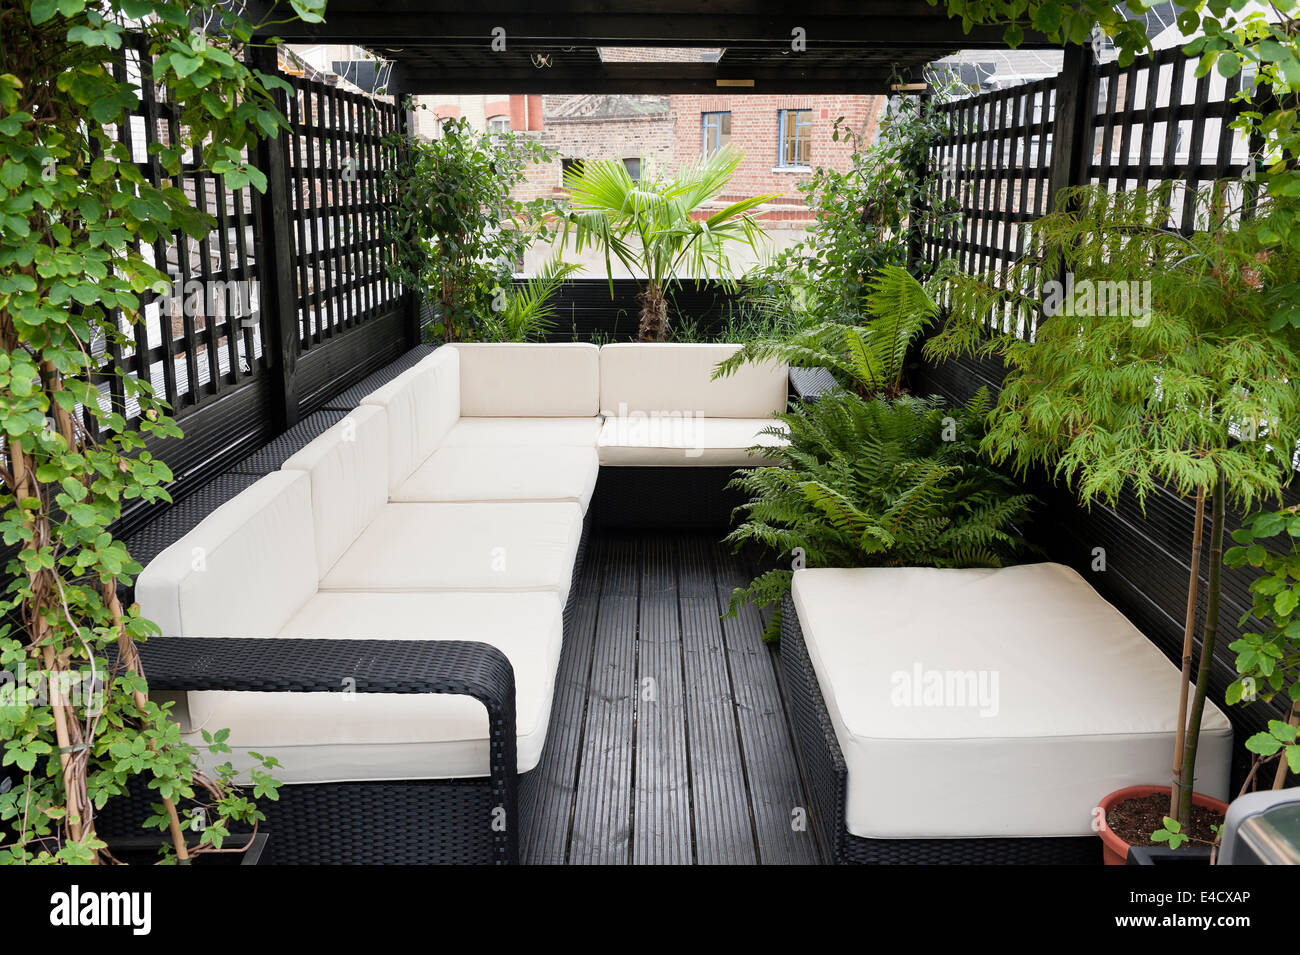 Rattan Furniture On Roof Terrace With Trellis